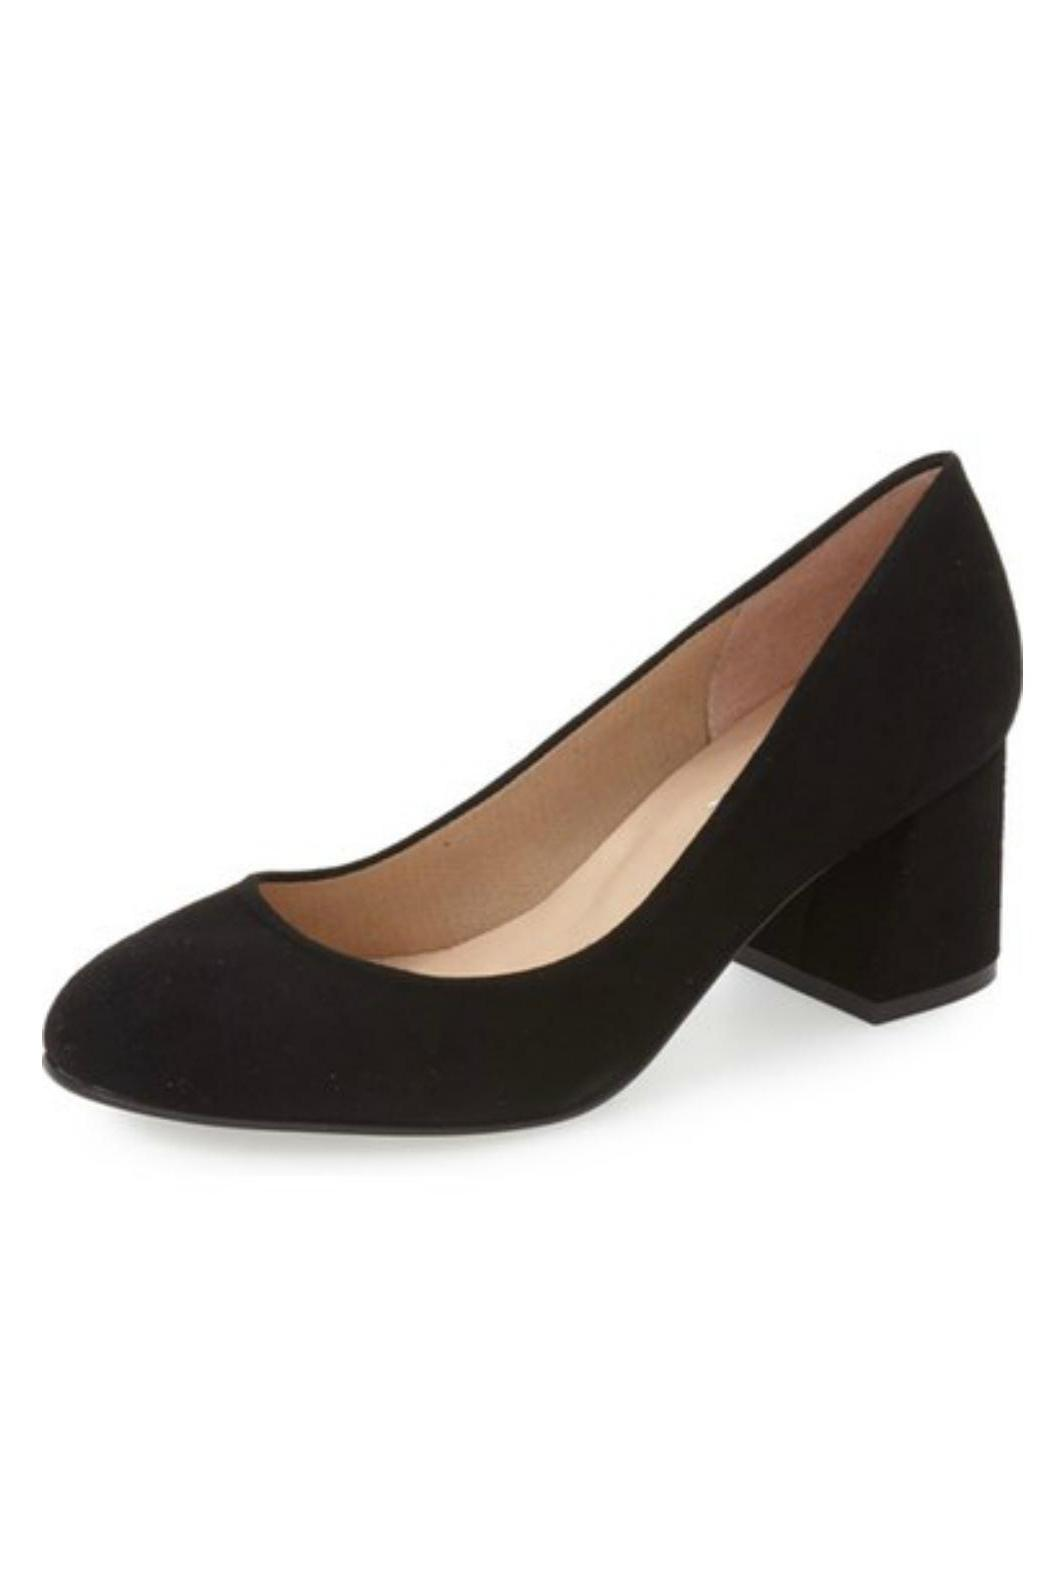 French Sole Trance Block Heel Pump from